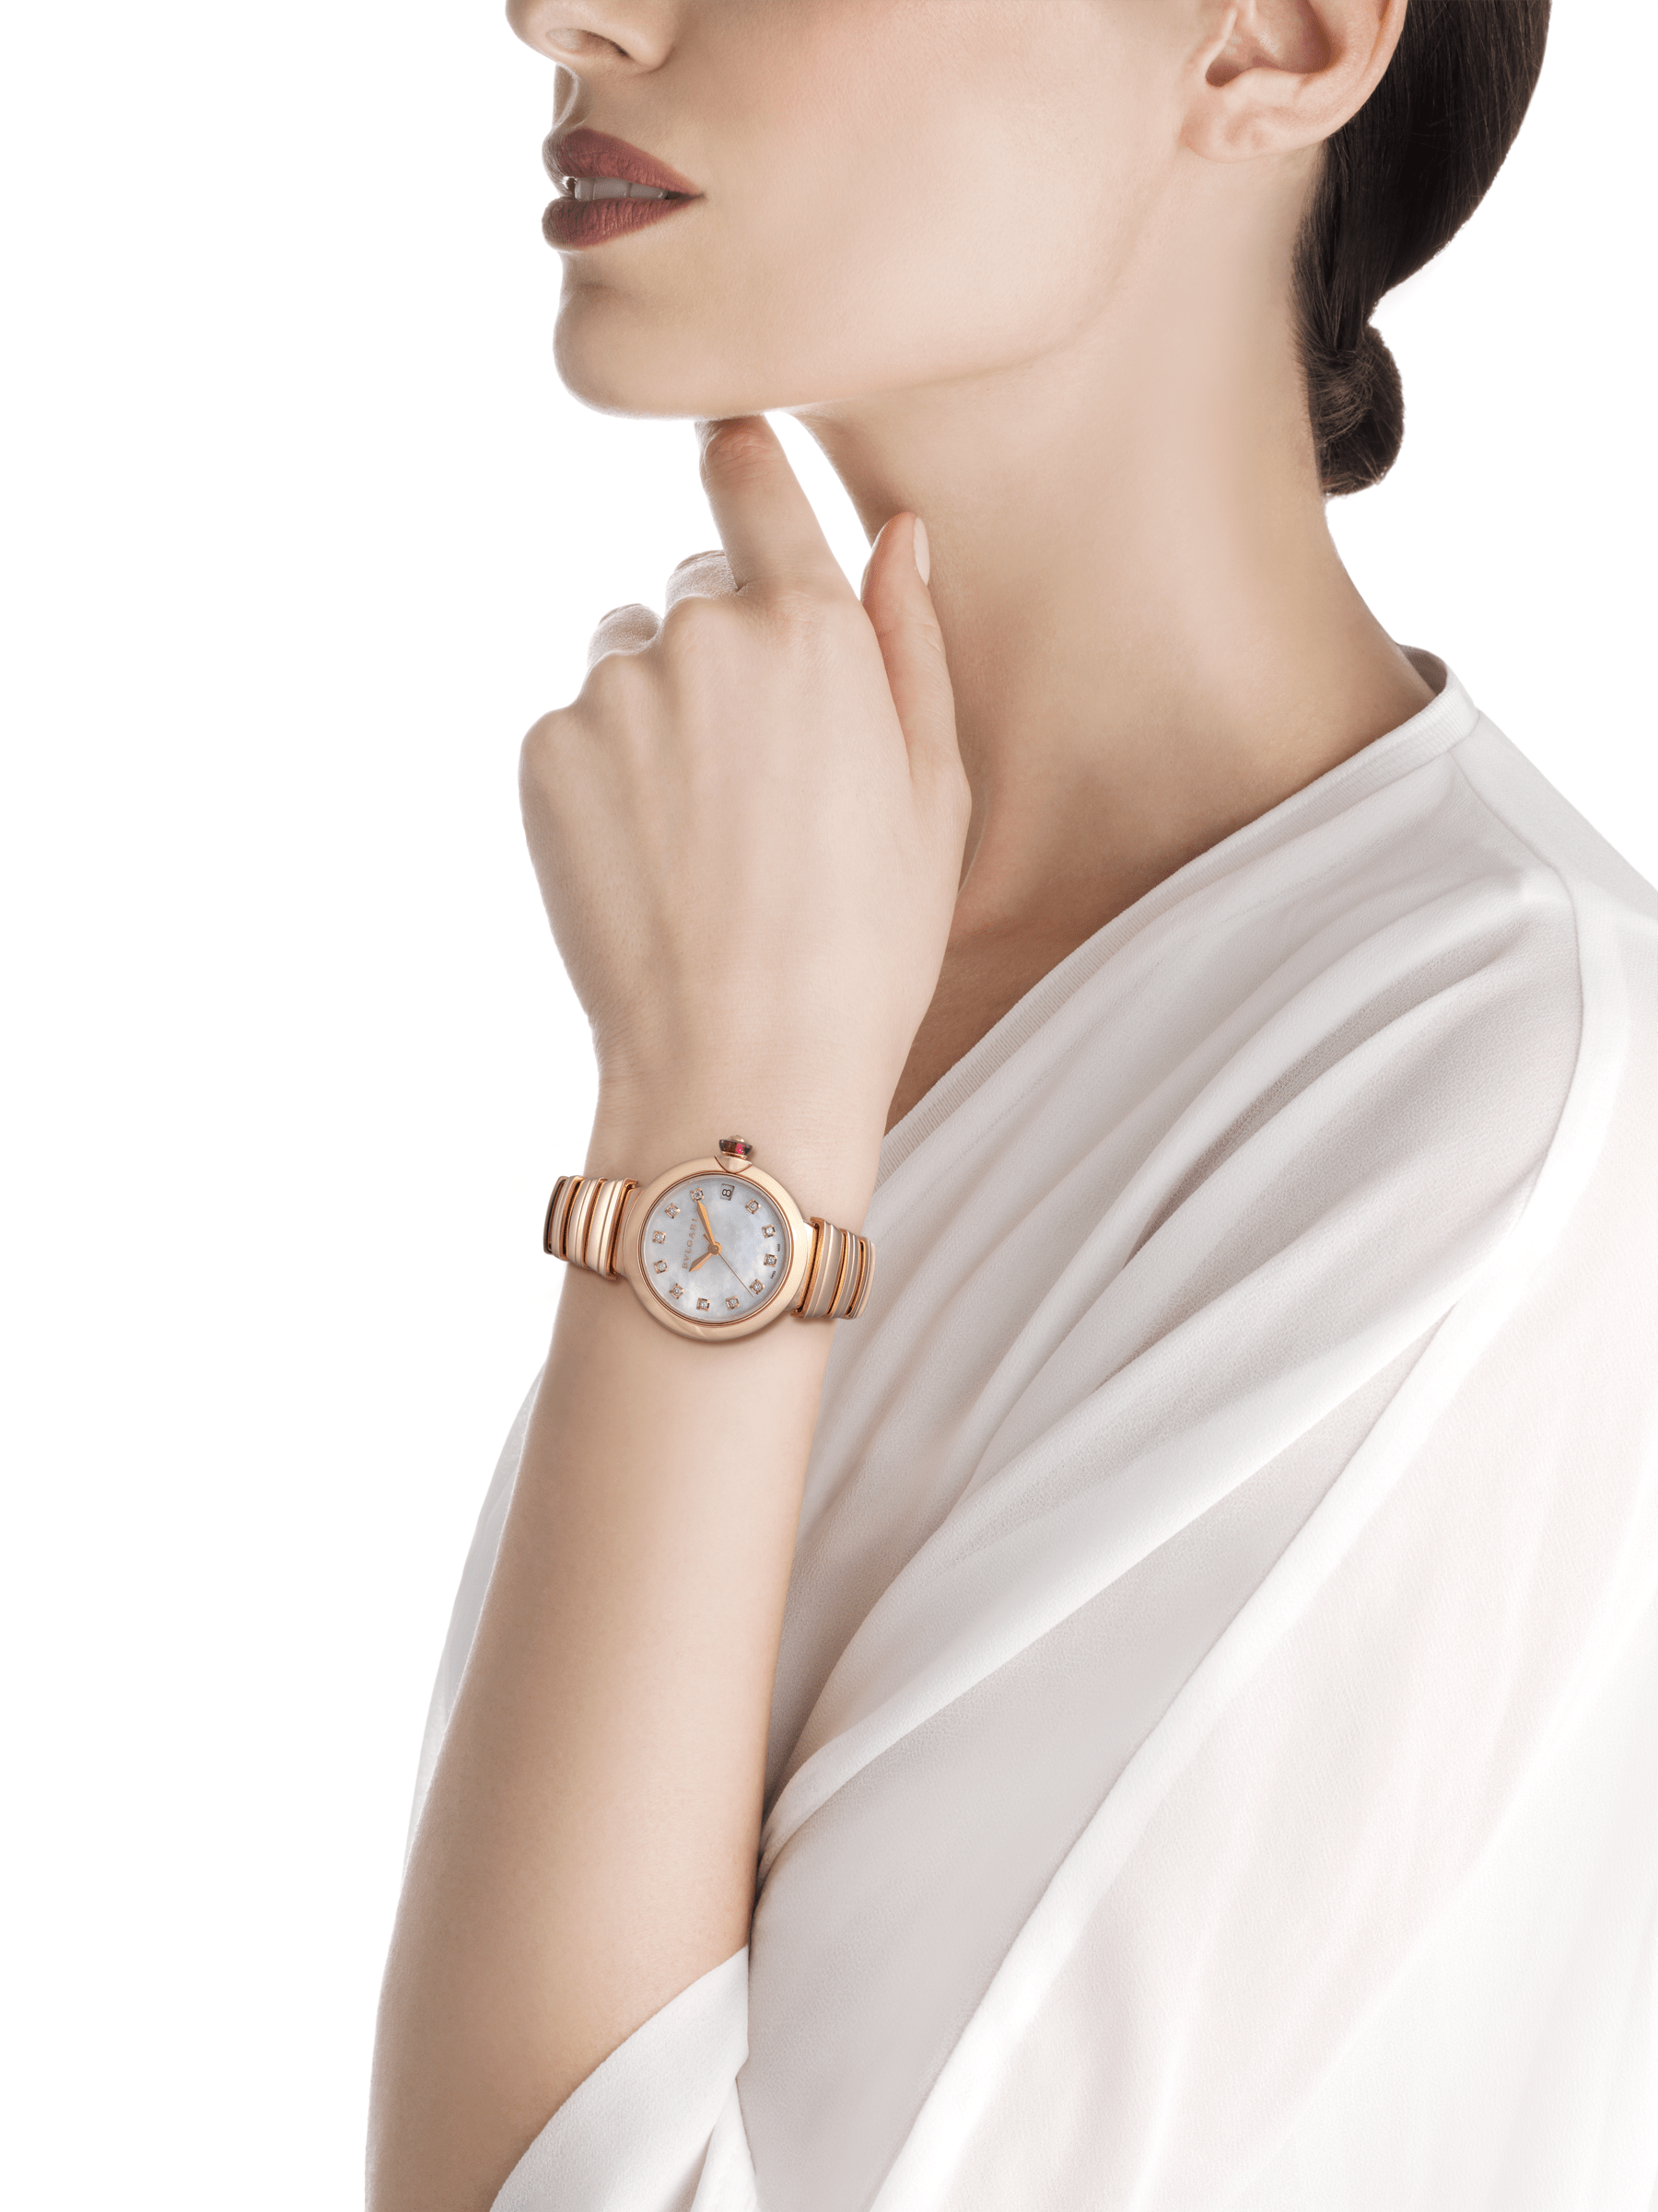 LVCEA watch in 18 kt rose gold case and bracelet, with white mother-of-pearl dial and diamond indexes. 102353 image 2